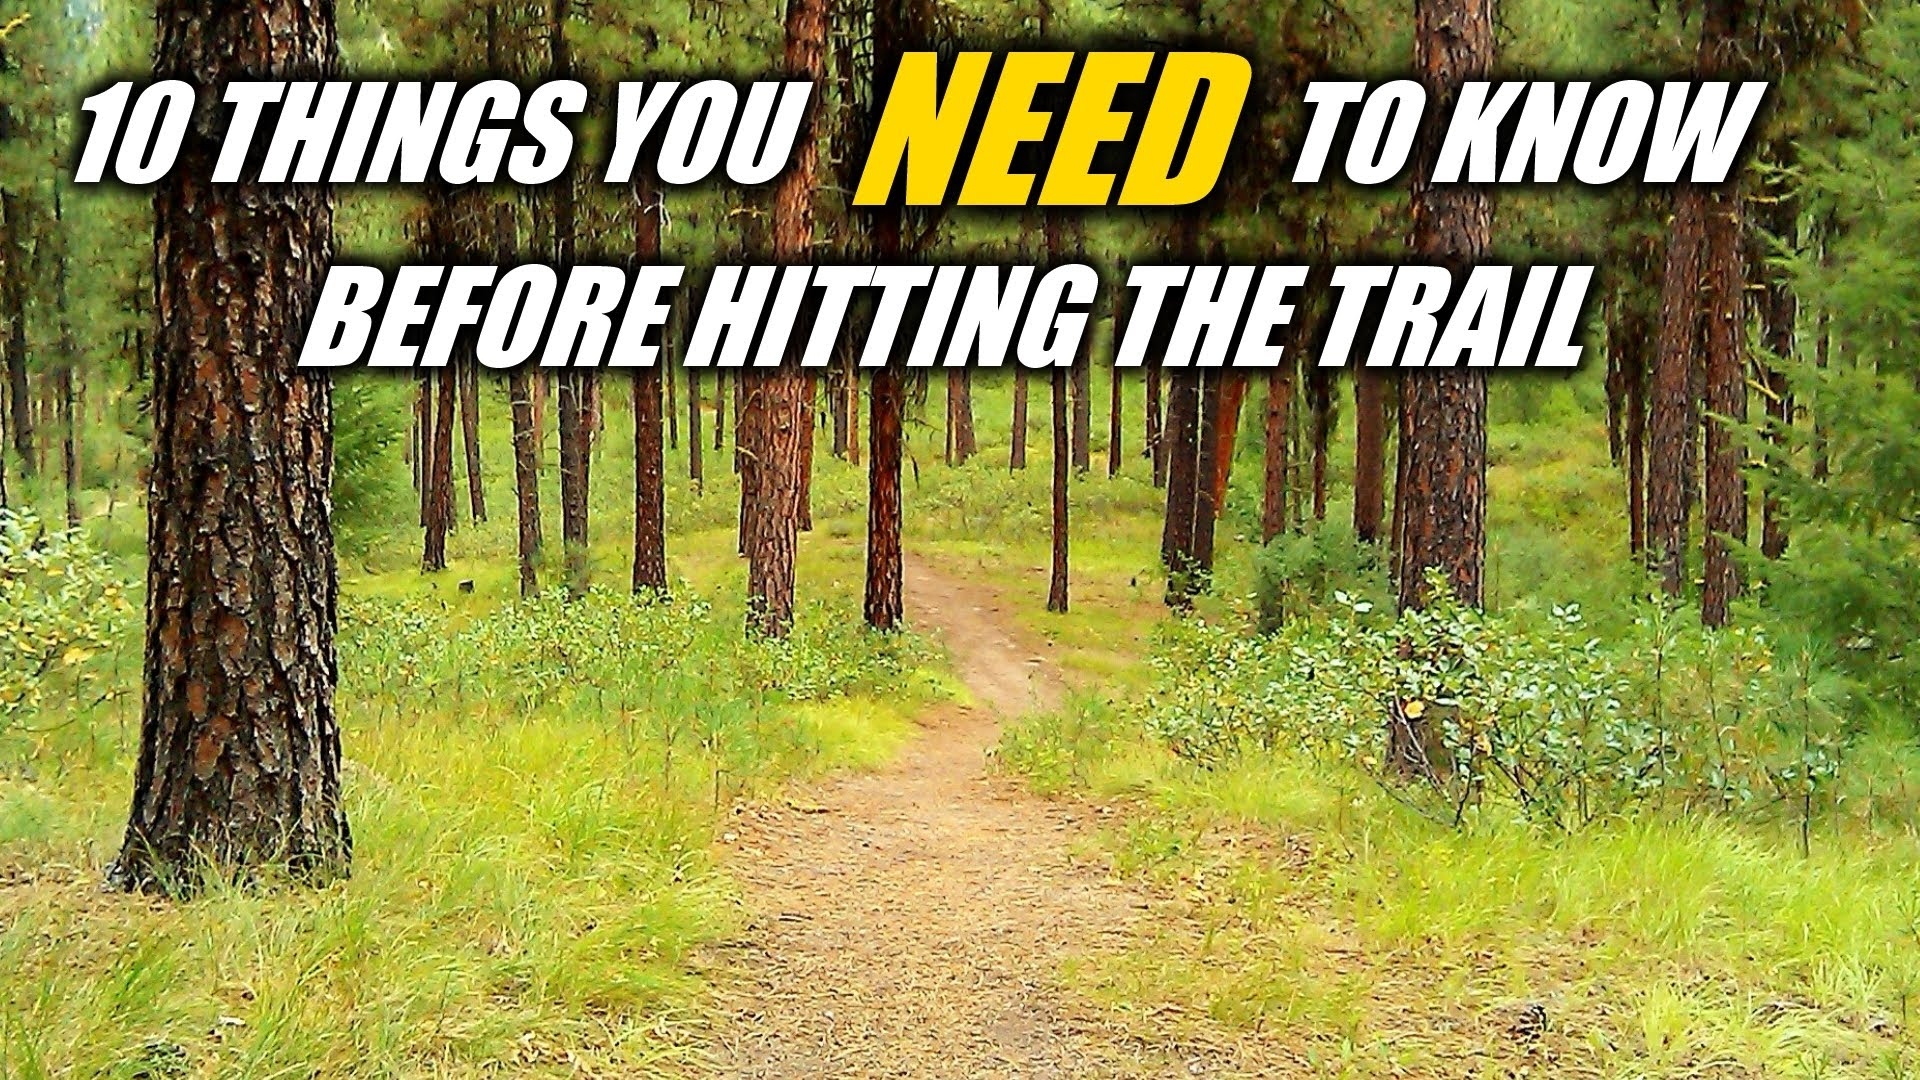 10 Things You NEED To Know Before Hitting The Trail